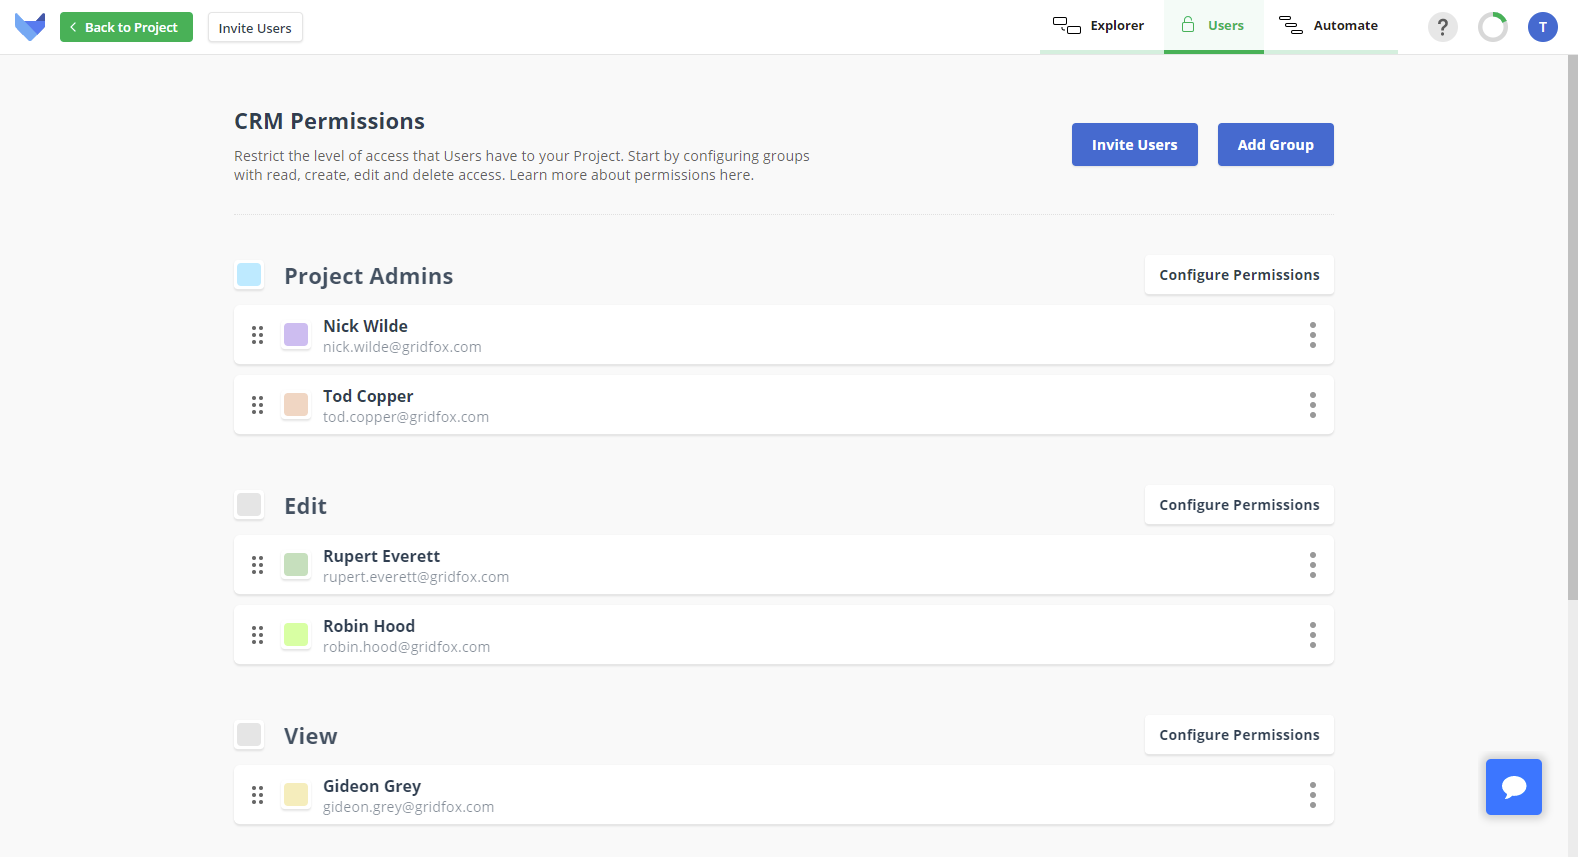 The users page with some invited users in various groups